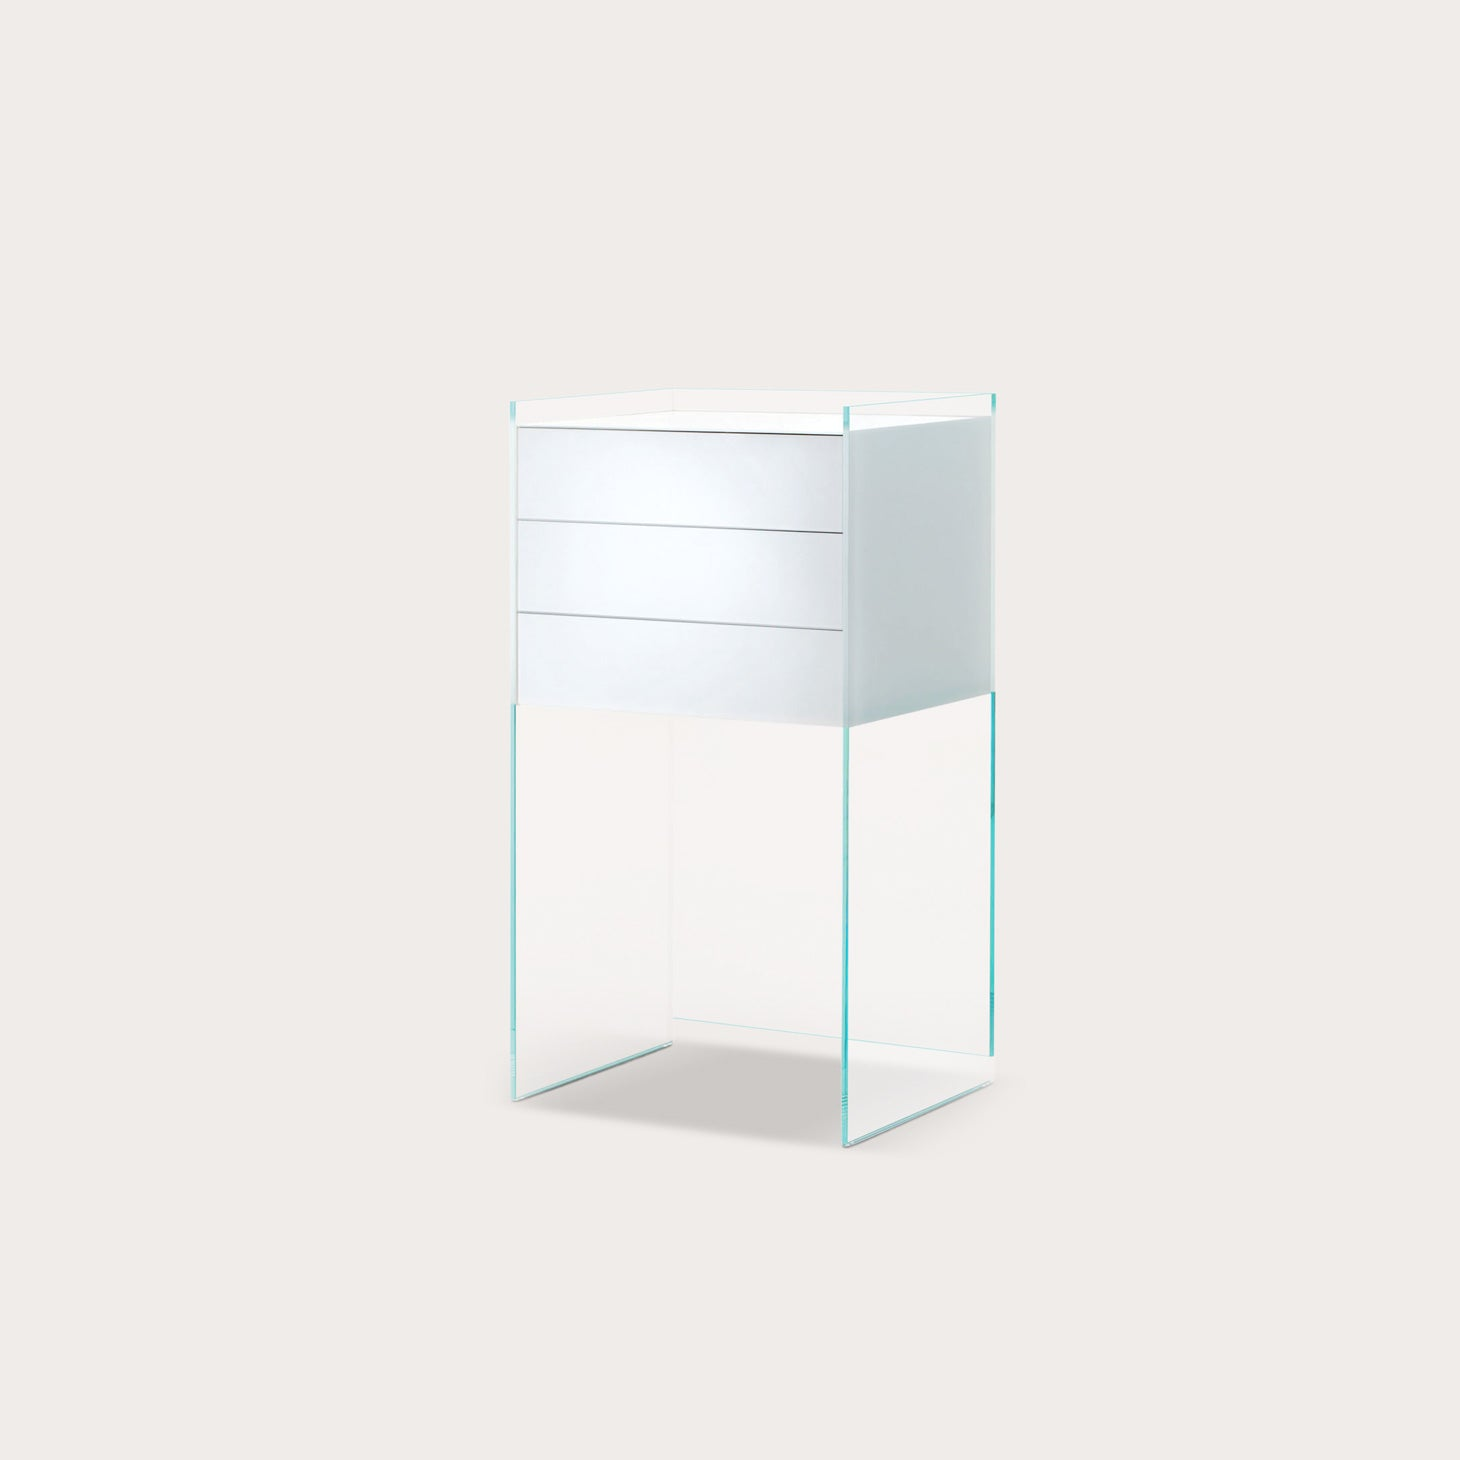 Float Chest of Drawers Tables Patrick Norguet Designer Furniture Sku: 288-230-10224